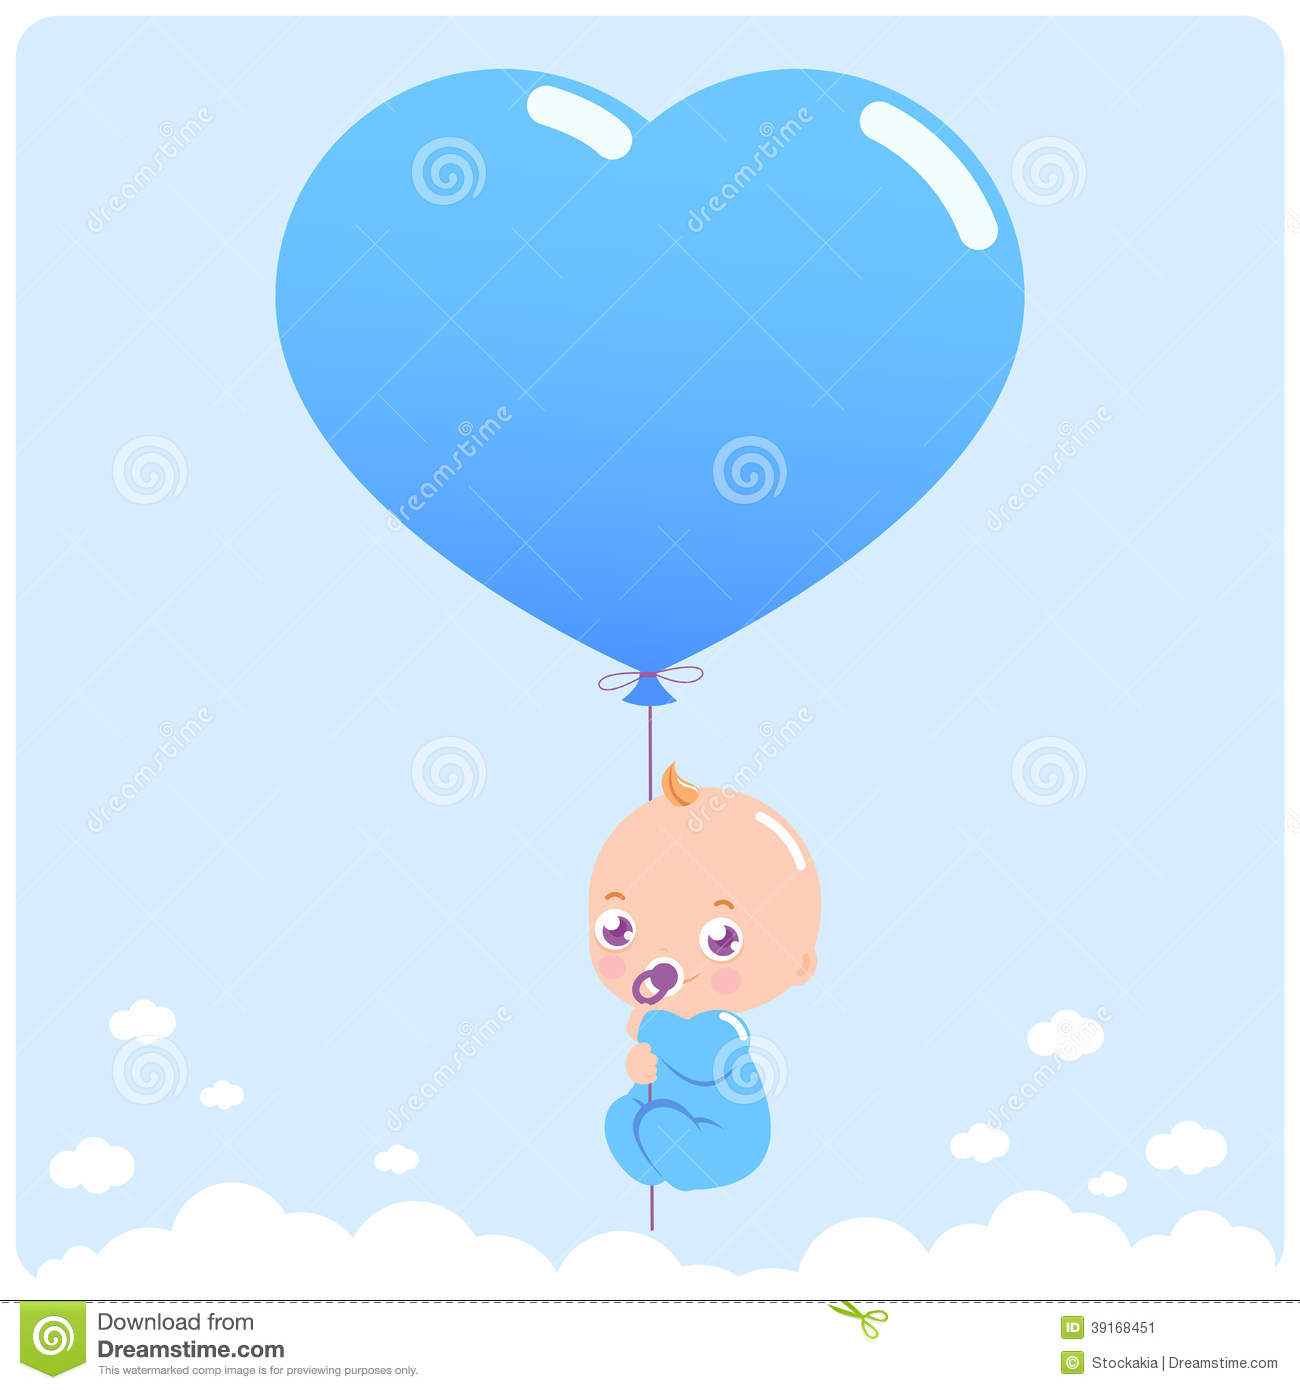 cute newborn baby boy flying in the sky holding a heart balloon.